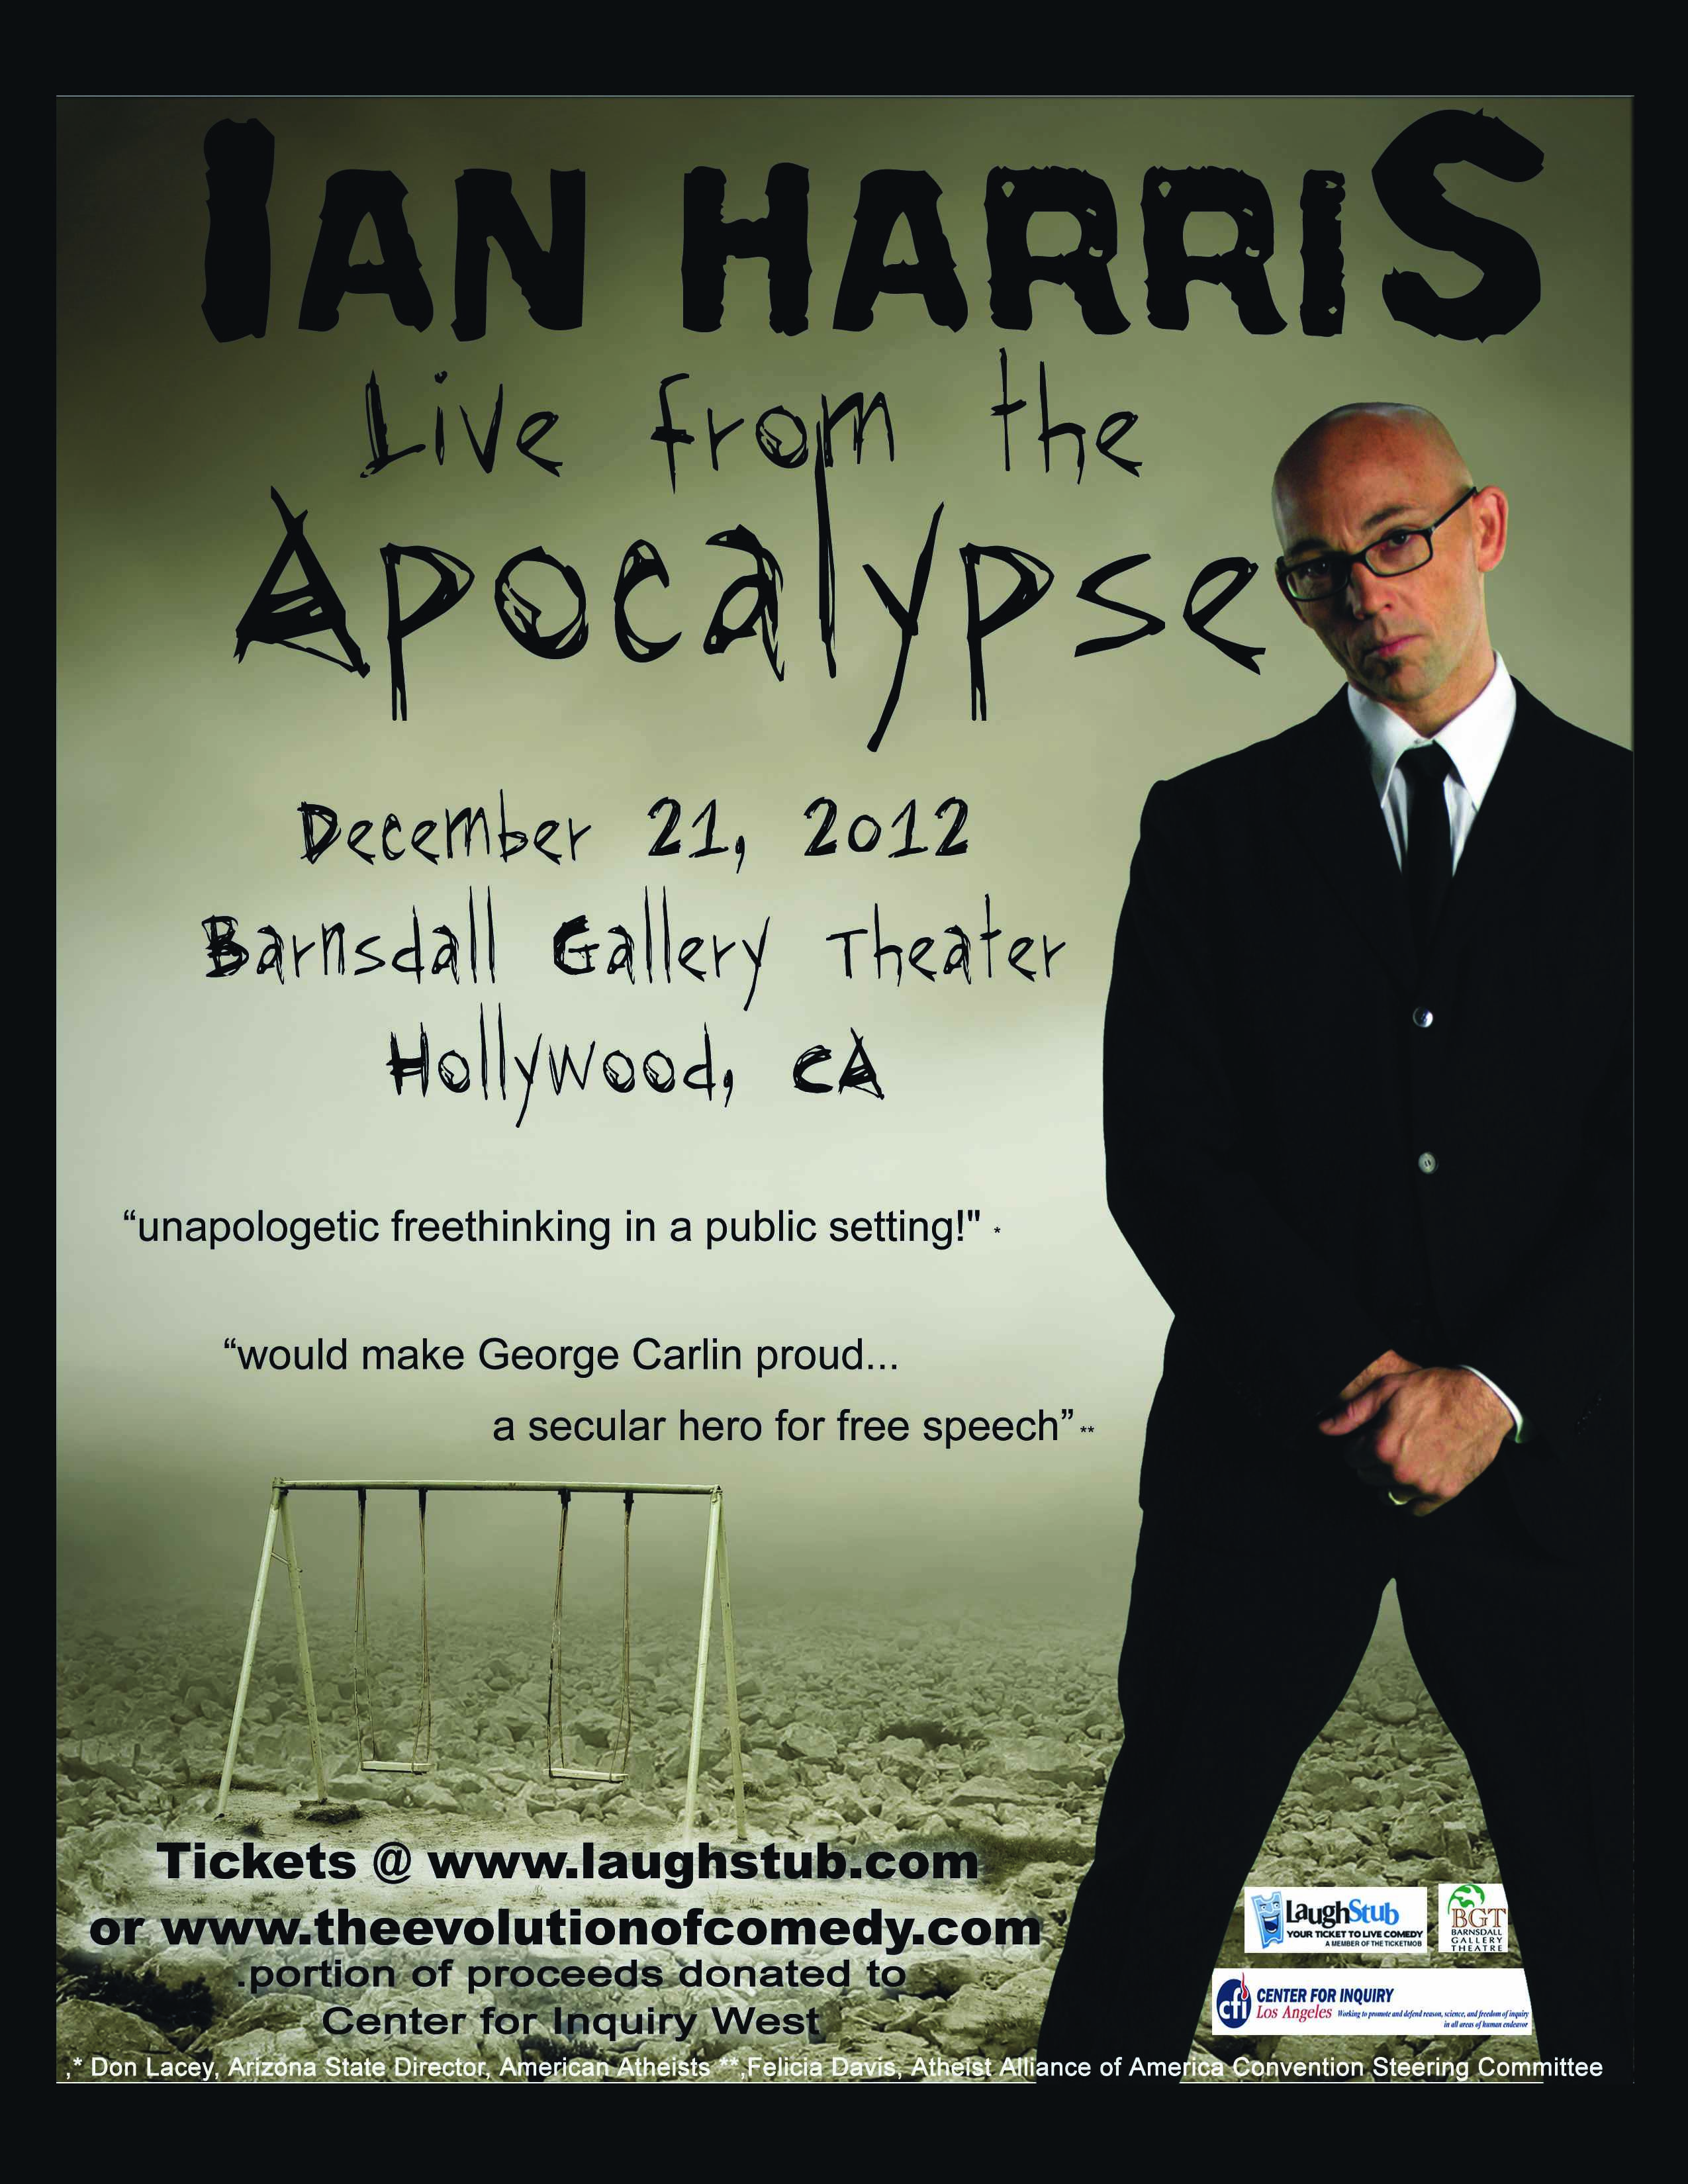 Ian Harris Live From The Apocalypse